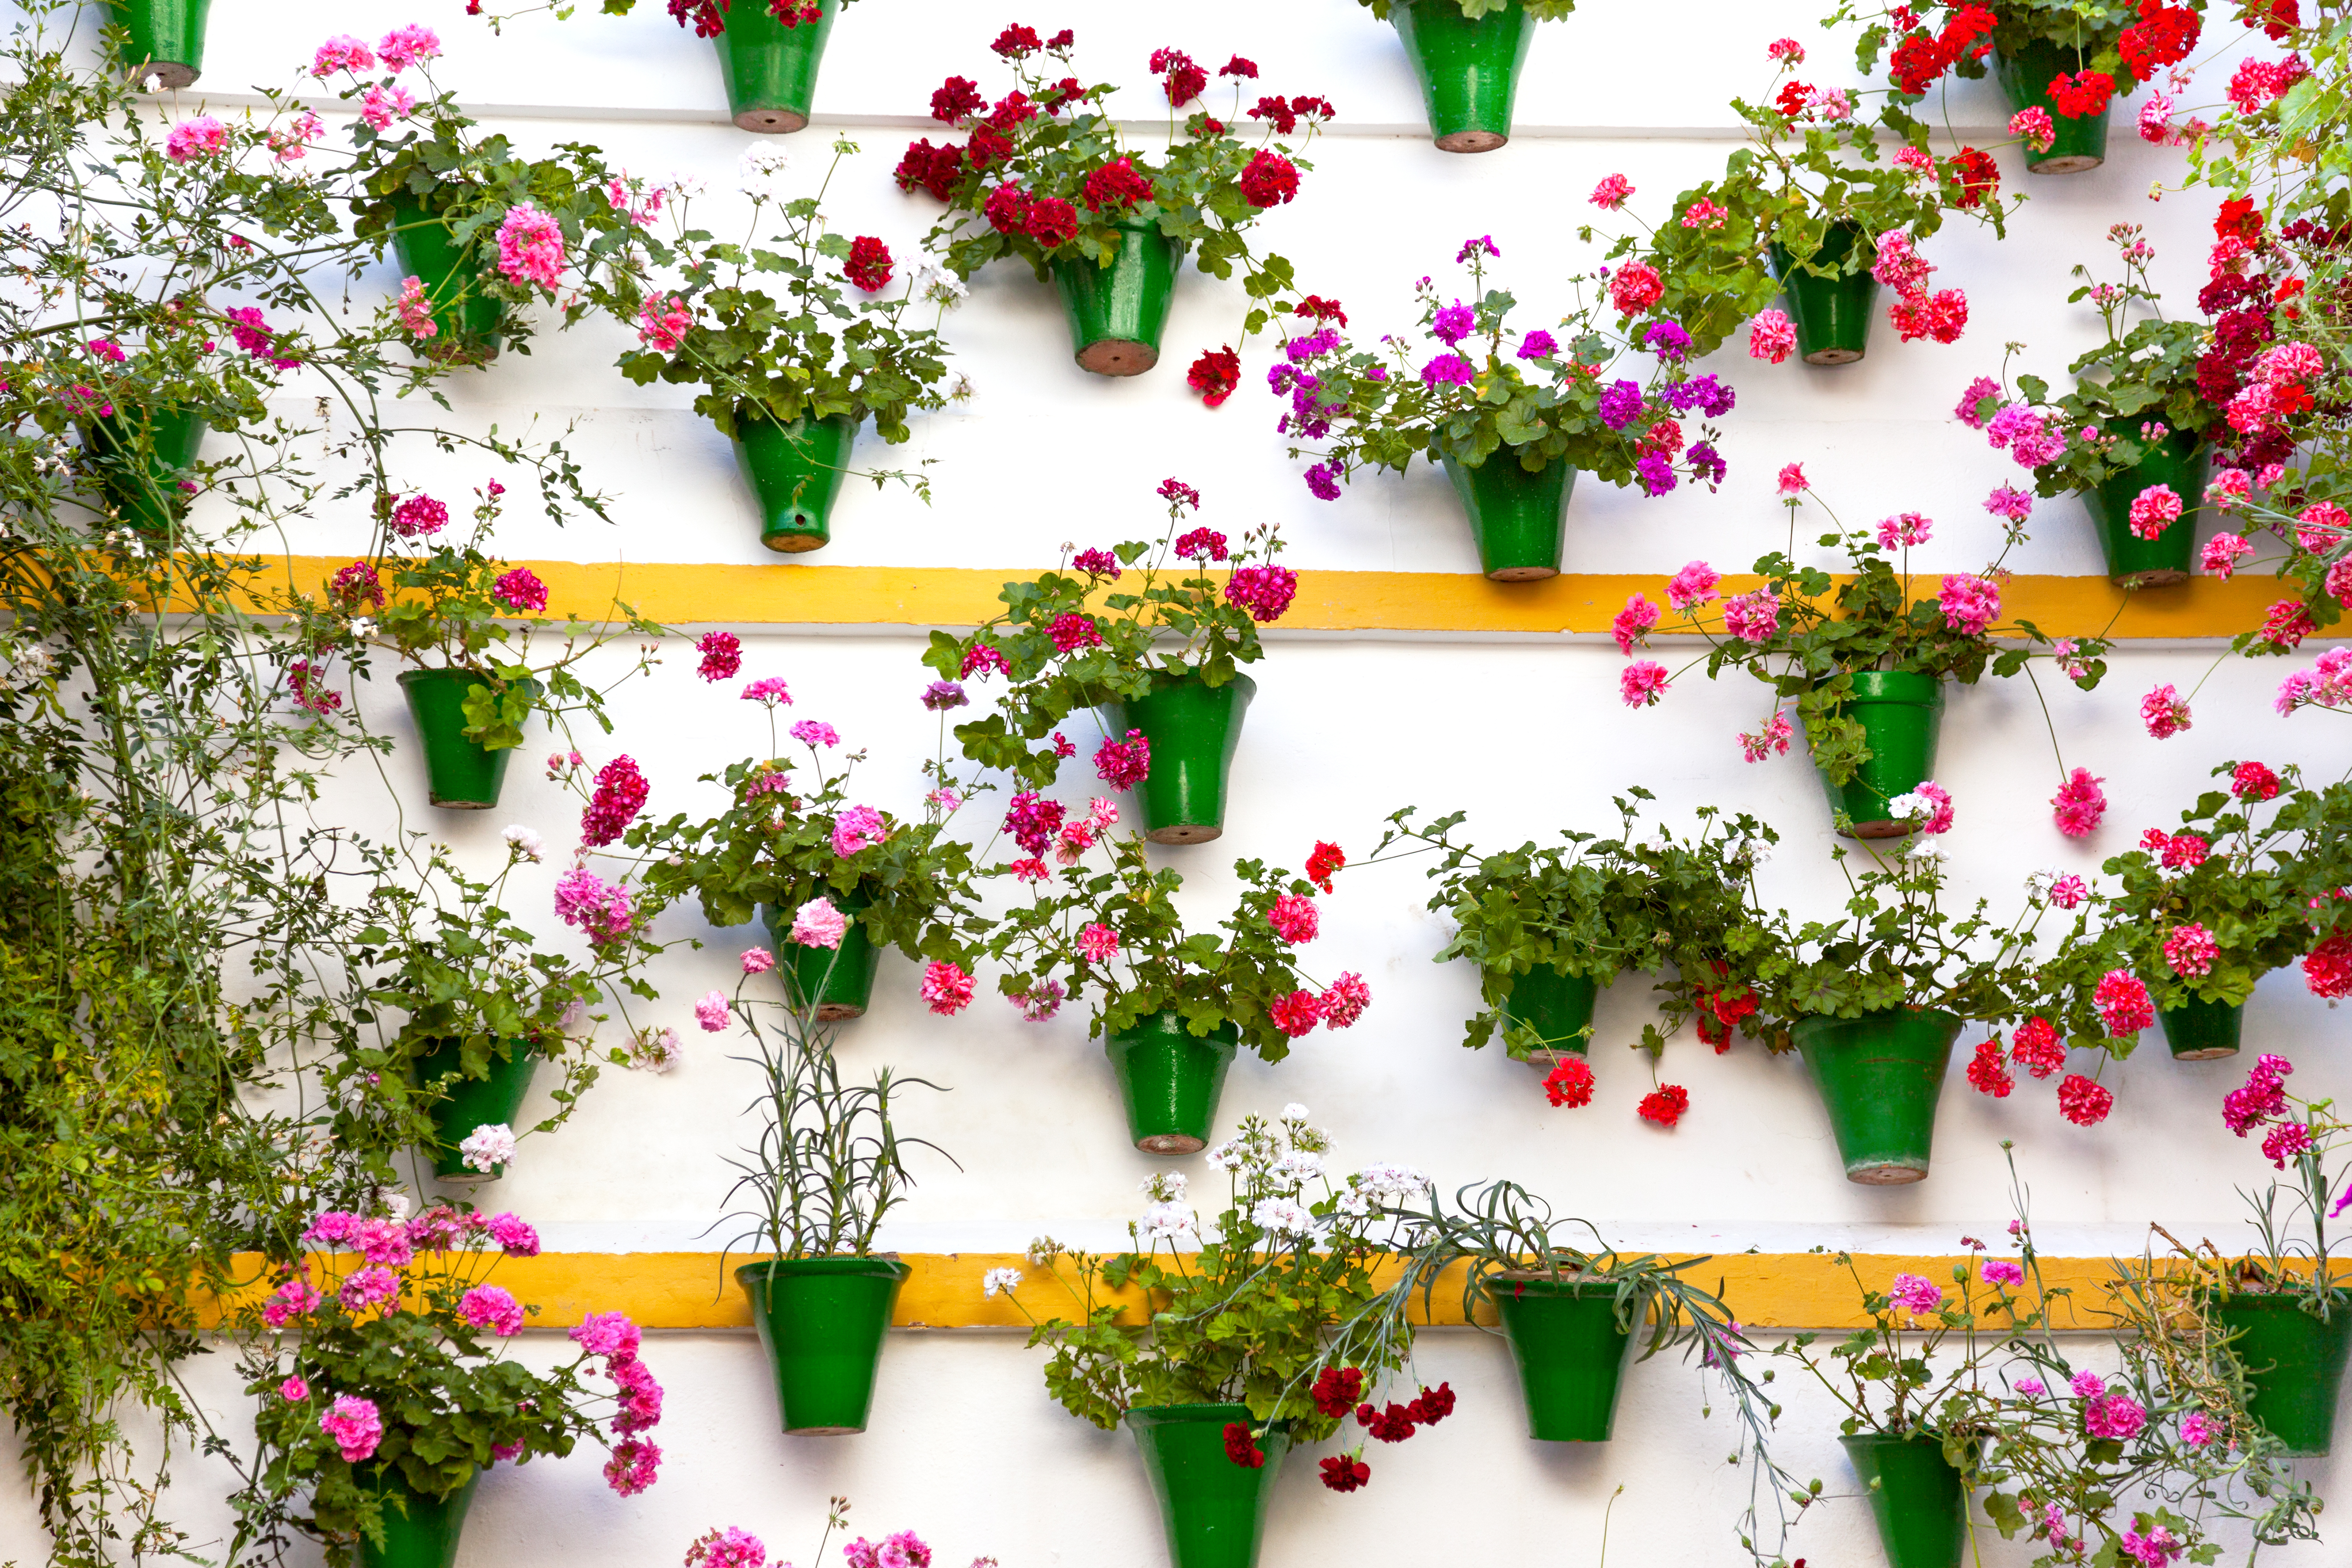 Hang with Me » Flower Decoration of the Wall – Old European Town